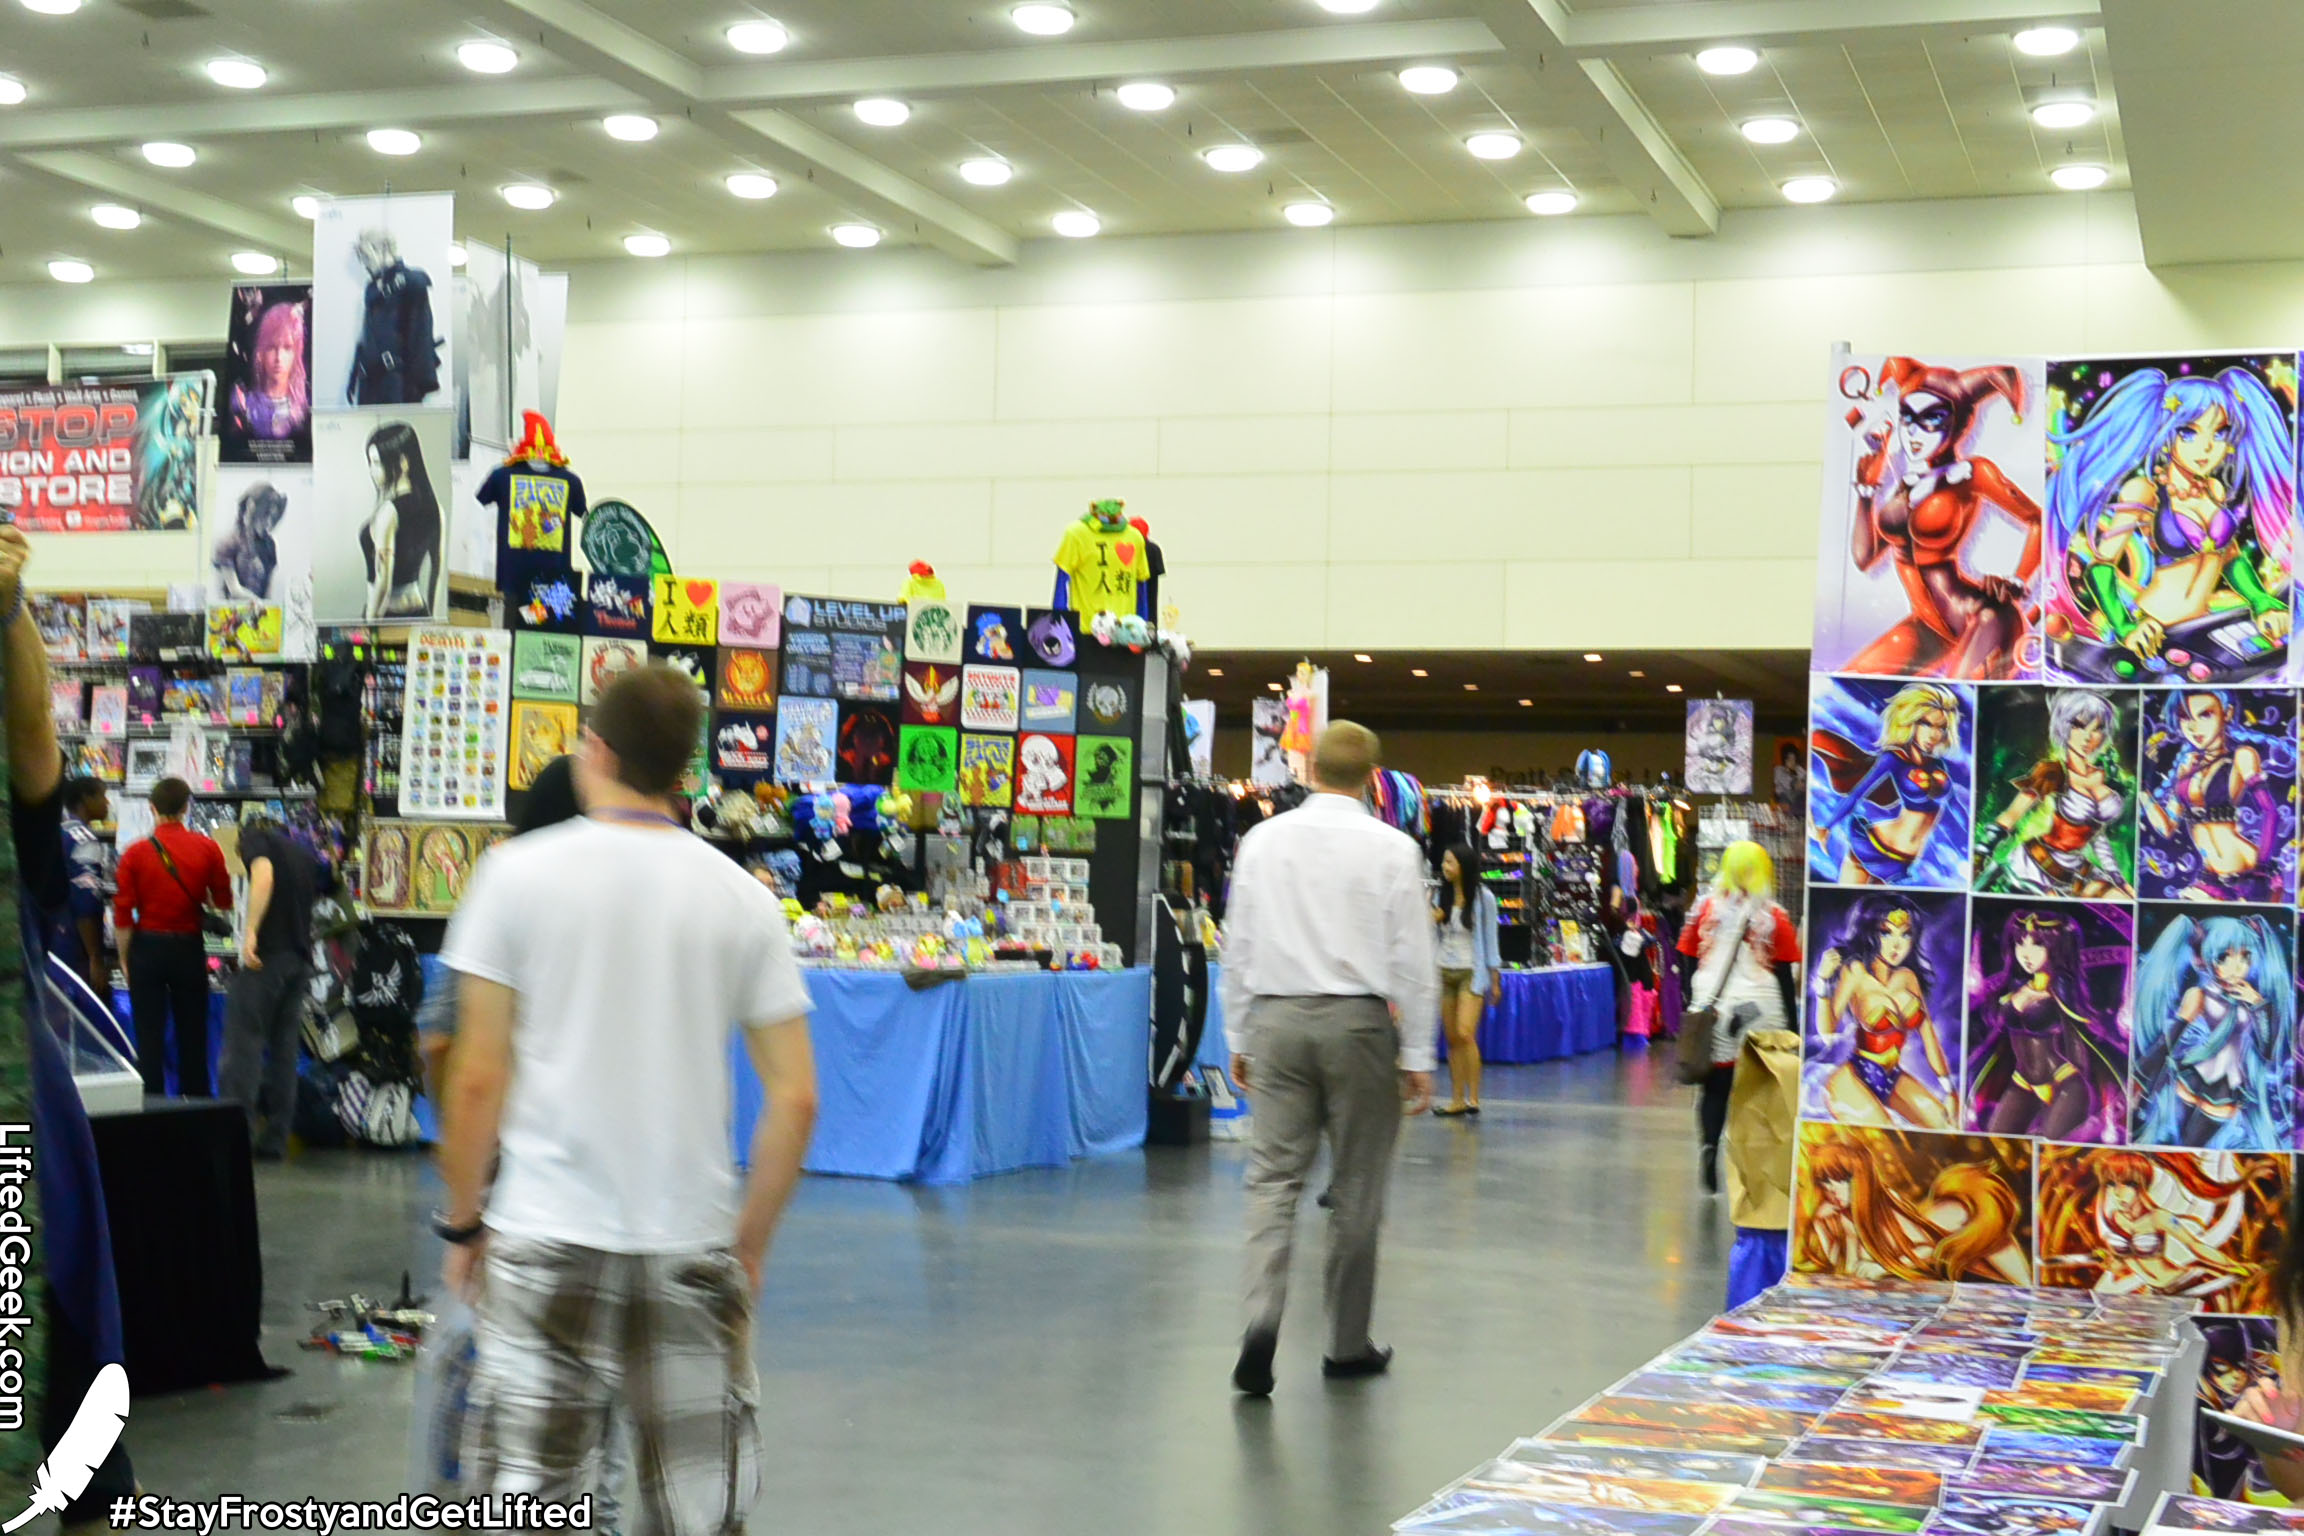 Spacious Exhibitor's Hall